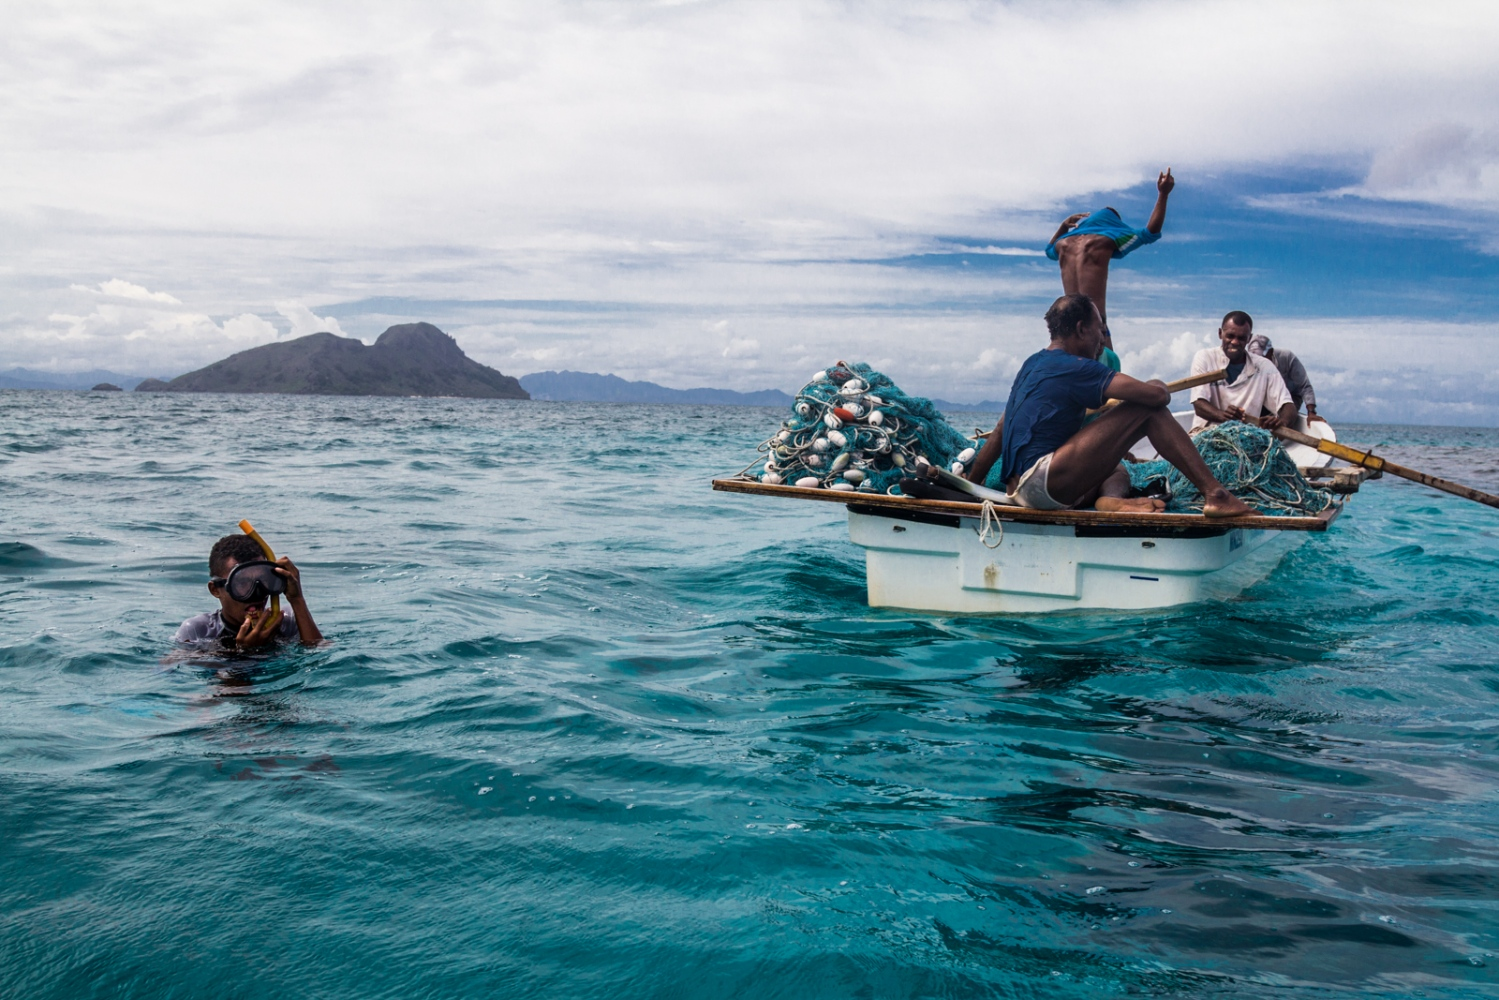 Fijian fishermen get ready to dive into the clear waters that cover Fiji's Great Sea Reef to catch their source of protein and income, Fish. The Oceans across the world are one of the most vital sources of human livelihood and survival. Seafood provides 3 billion people with a fifth of their protein intake and not to mention income earnt off small-scale fishing practices. On a grander scale, the oceans absorb much of the Carbon Dioxide emitted, which is leading to increasing amounts of ocean acidification. Along with acidification, temperatures in the world's oceans have also risen as global warming intensifies, which has led to mass coral bleaching and the die-off of many reefs. These processes are directly impacting people who rely on the ocean for their food and survival, which is, in essence, all of us.